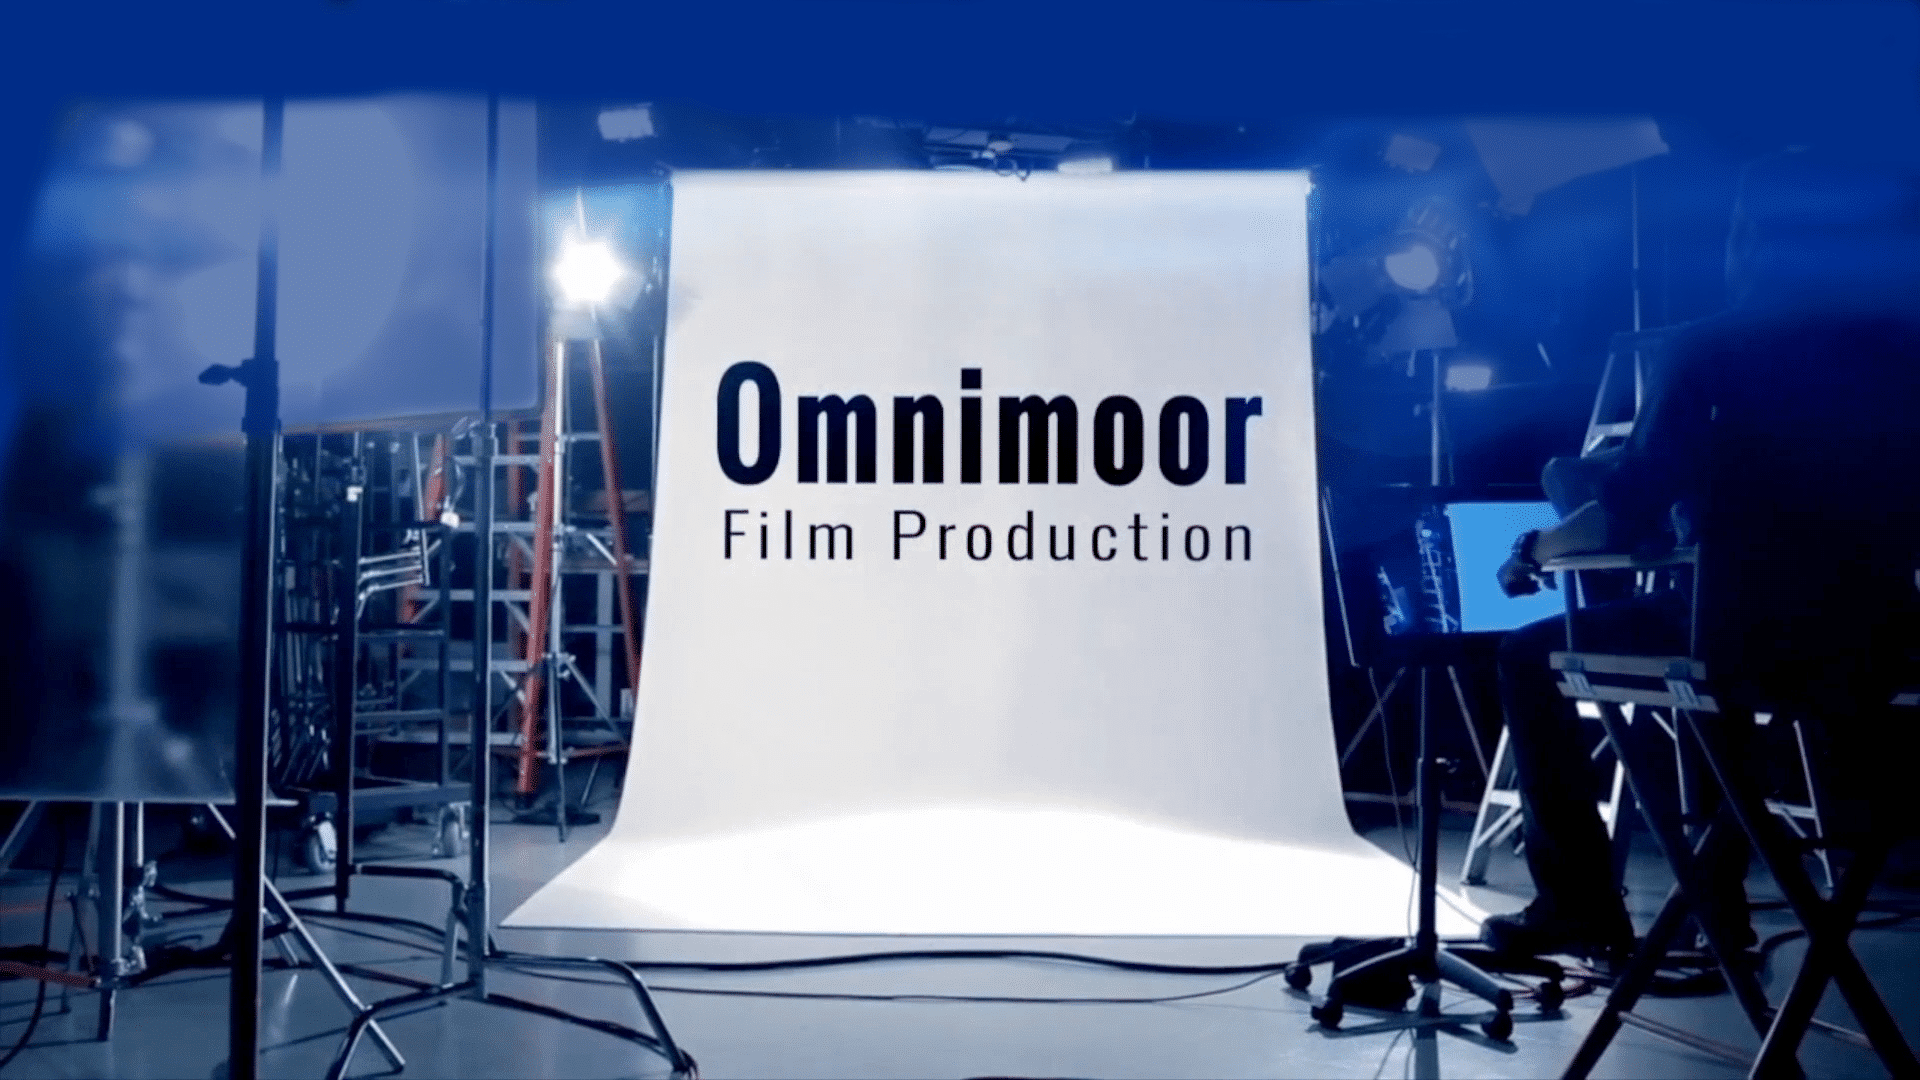 Omnimoor Film Production